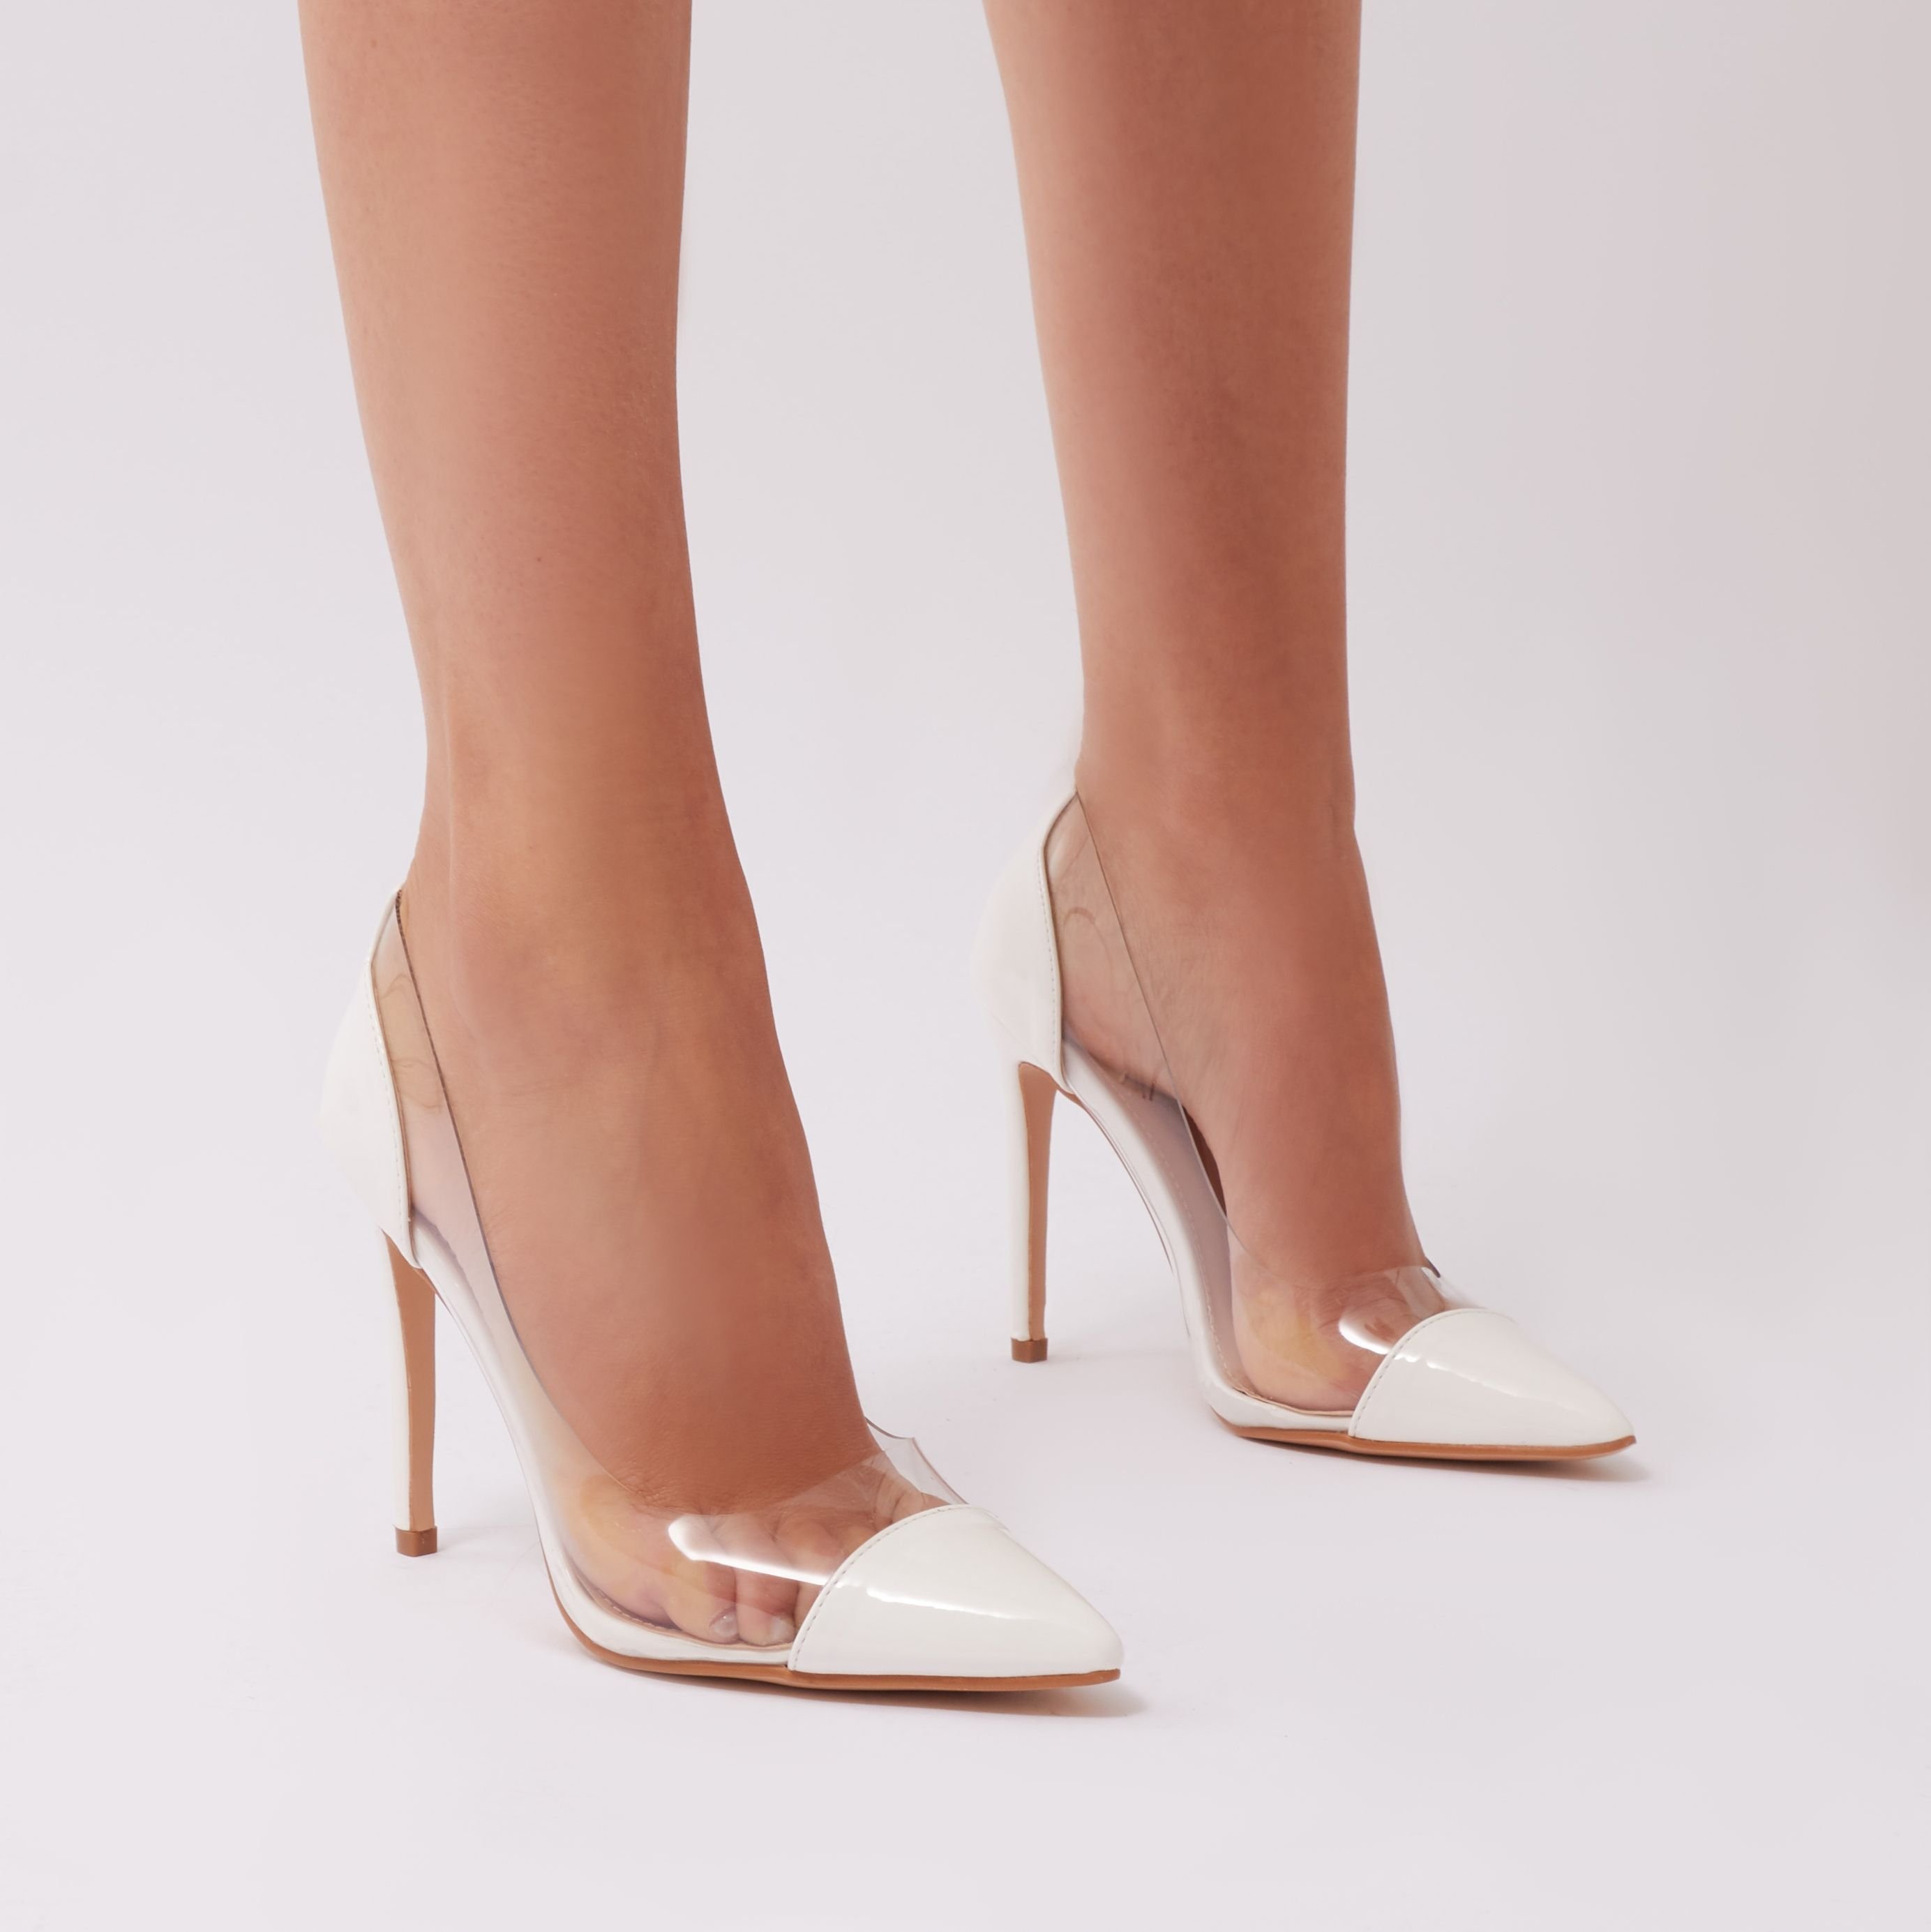 3e8c62f8e43 Potion Clear Perspex Court Heels in White Patent | Summer '18 ...